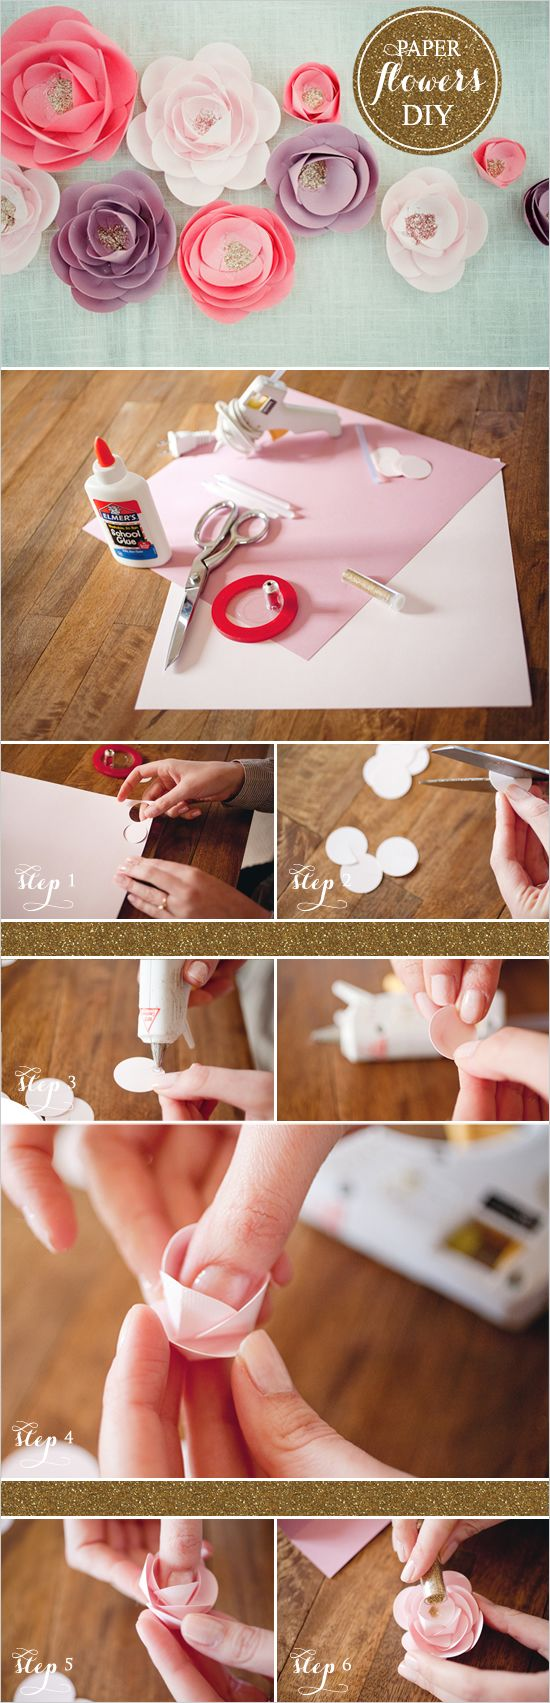 Make these, DIY Paper flower